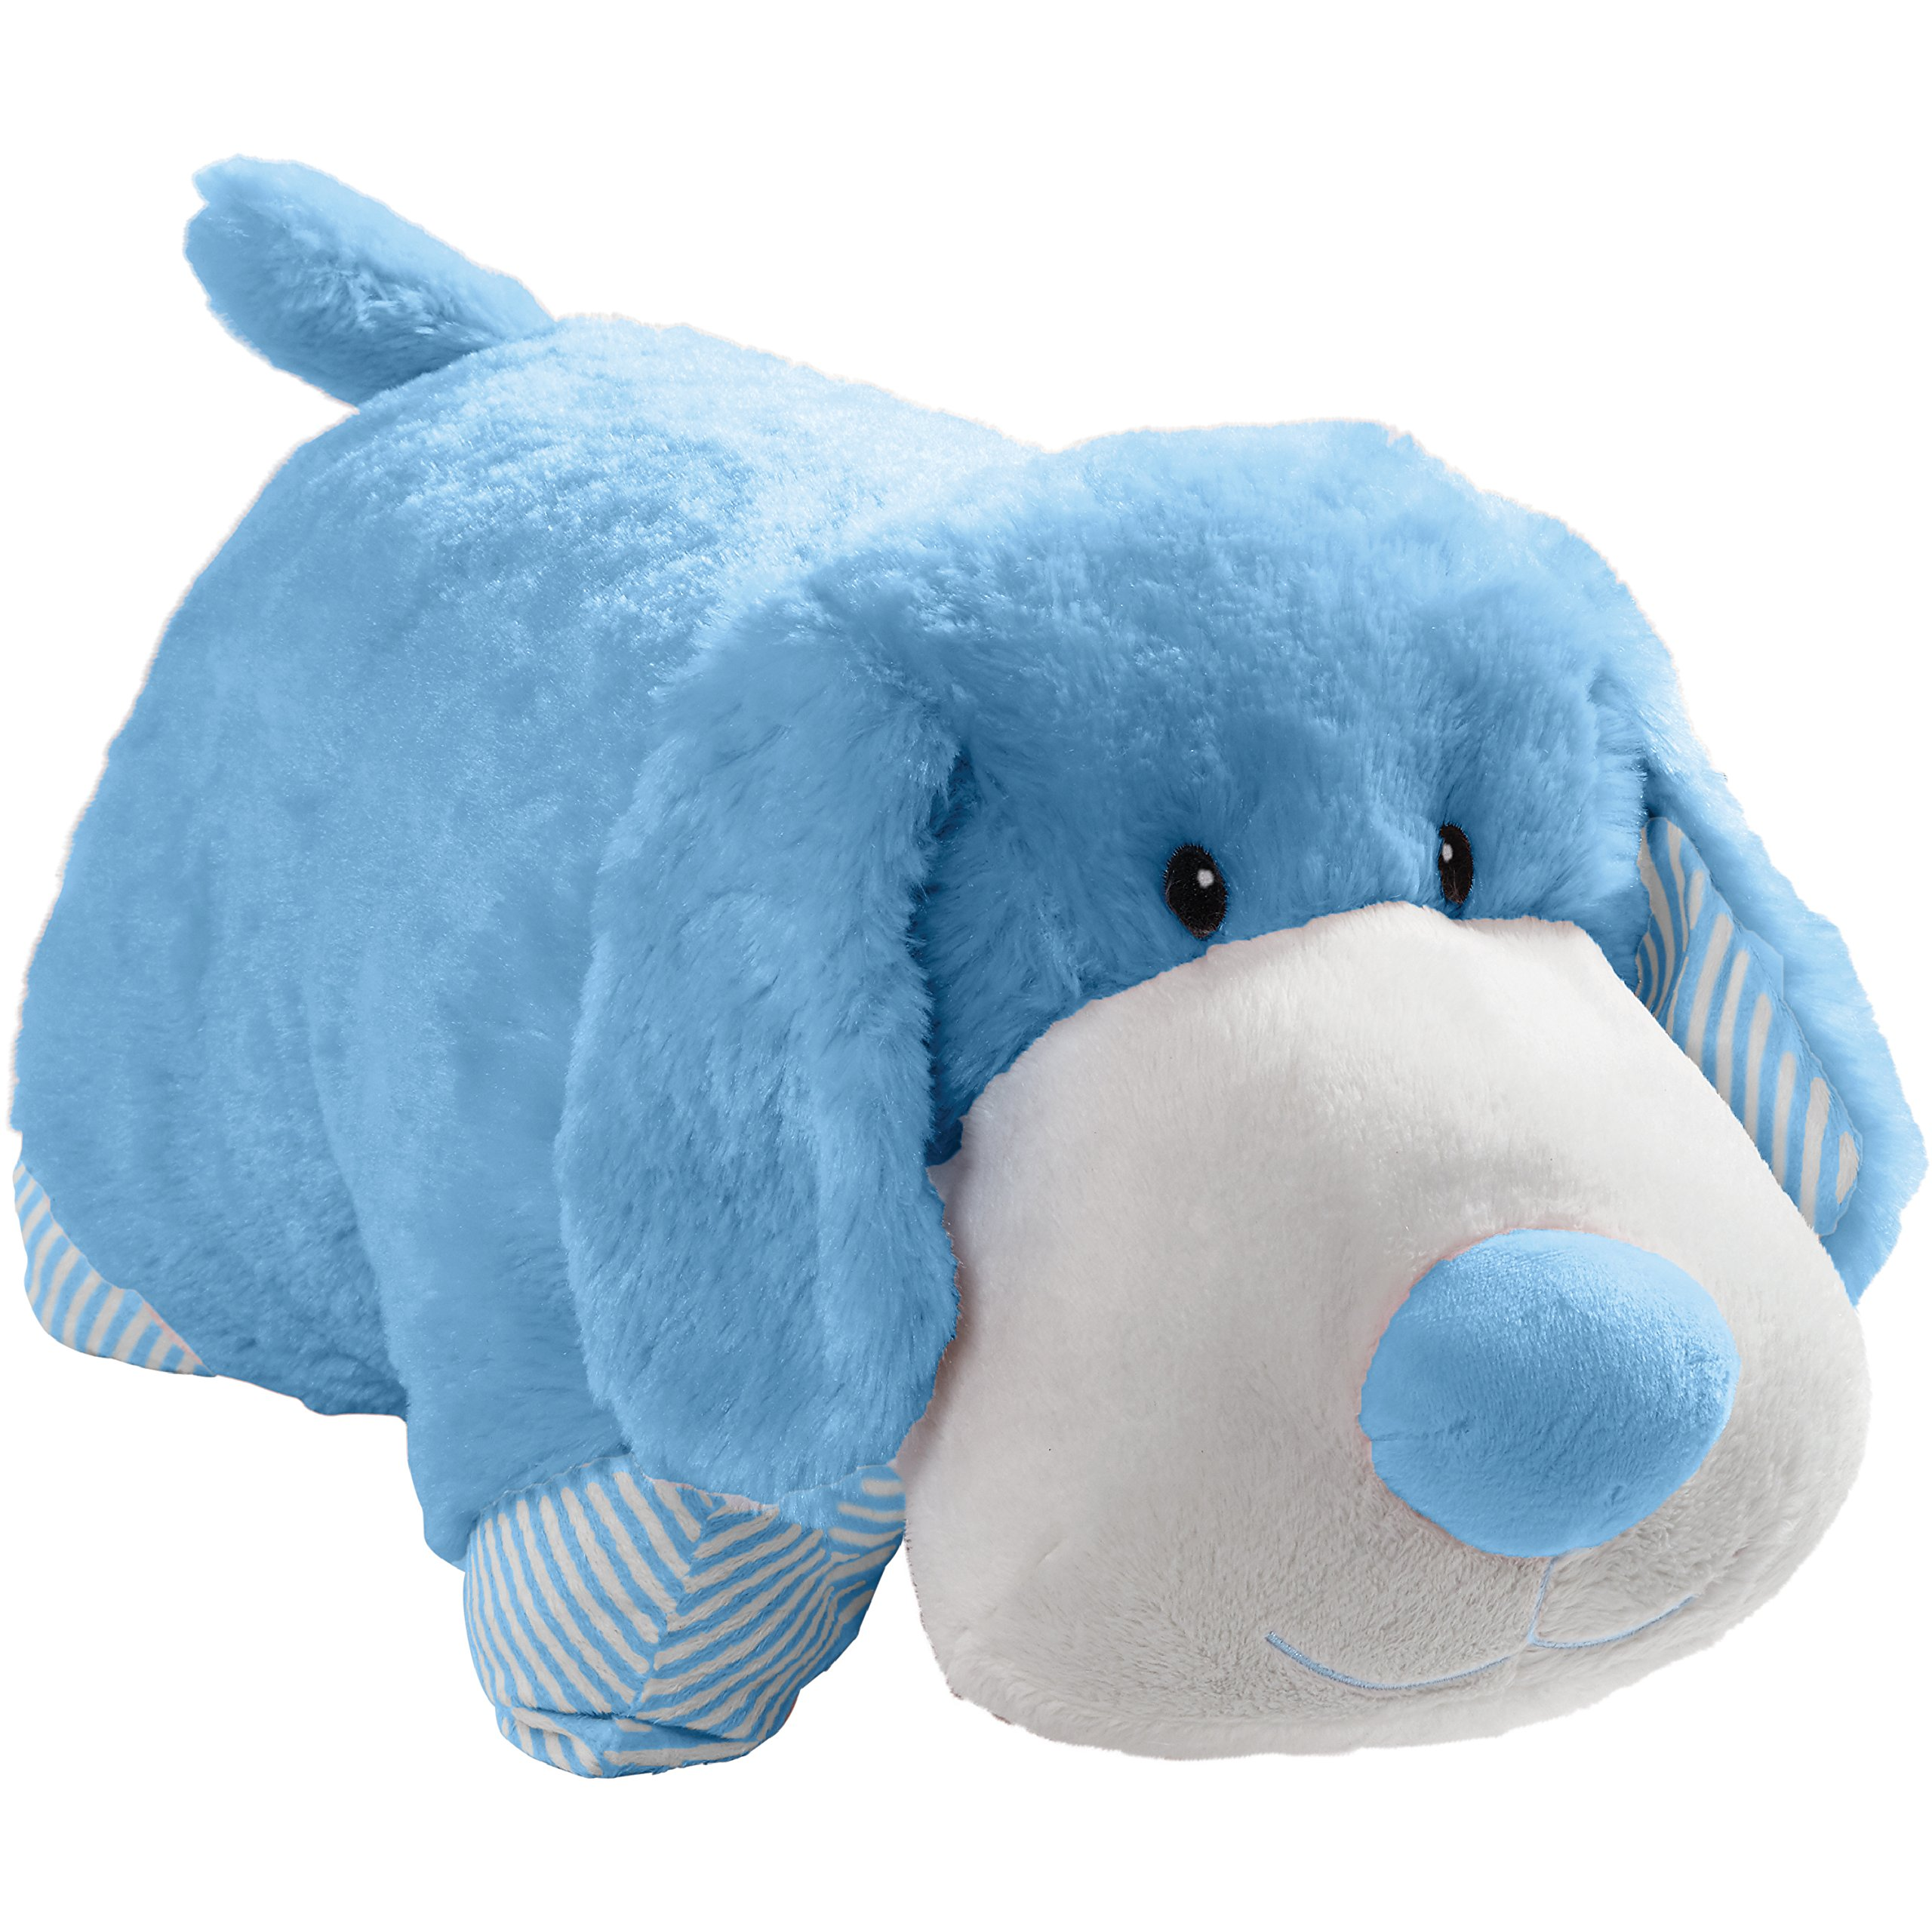 Pillow Pets 01313002P My First, Puppy, Stuffed Animal Plush Toy, 18'', Blue